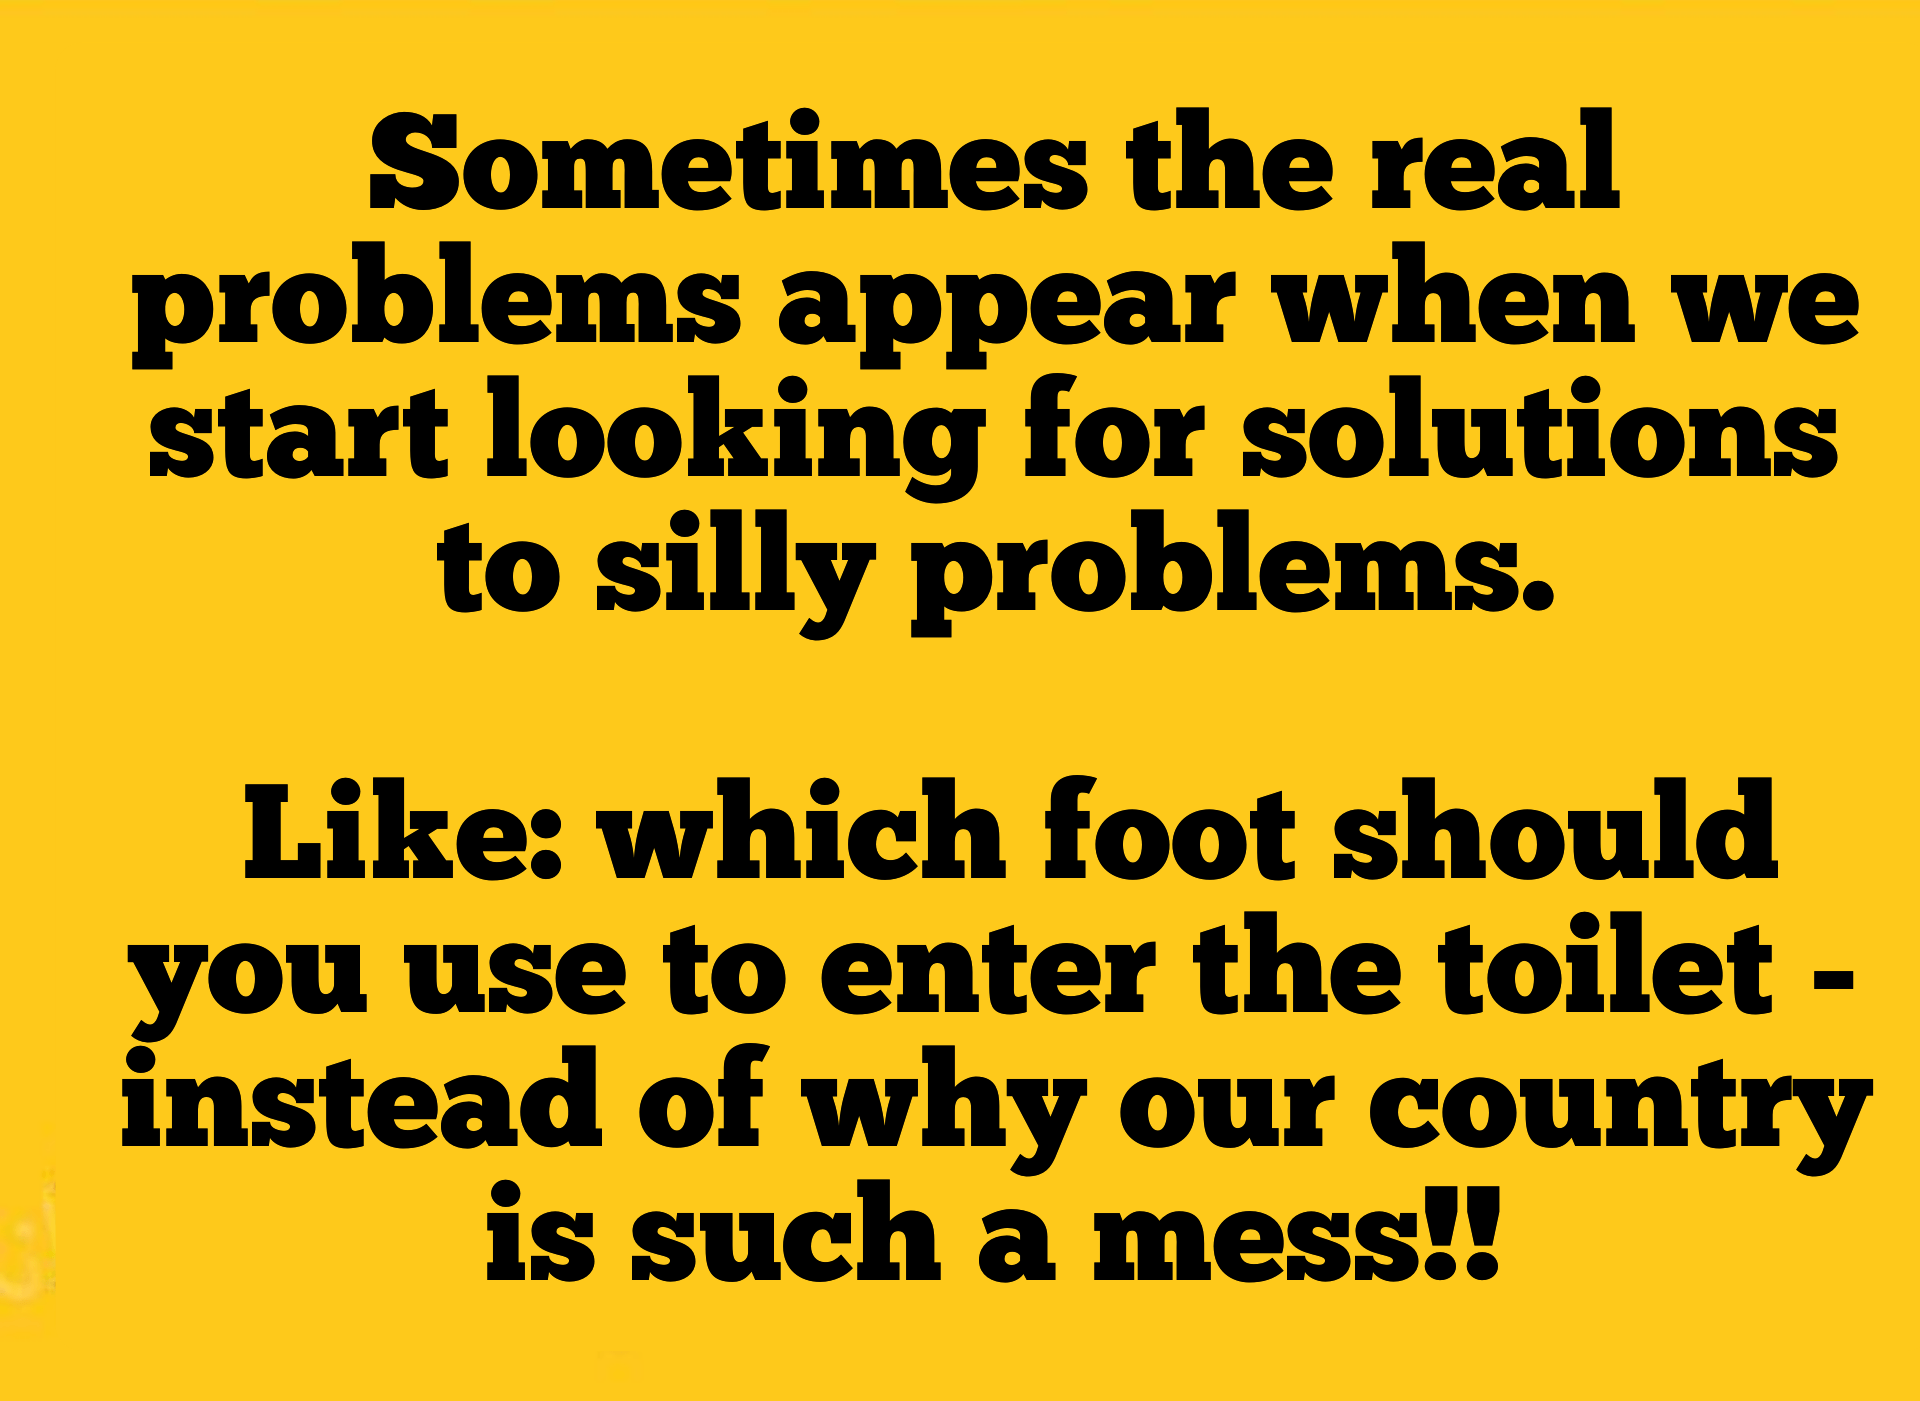 Our real problems.